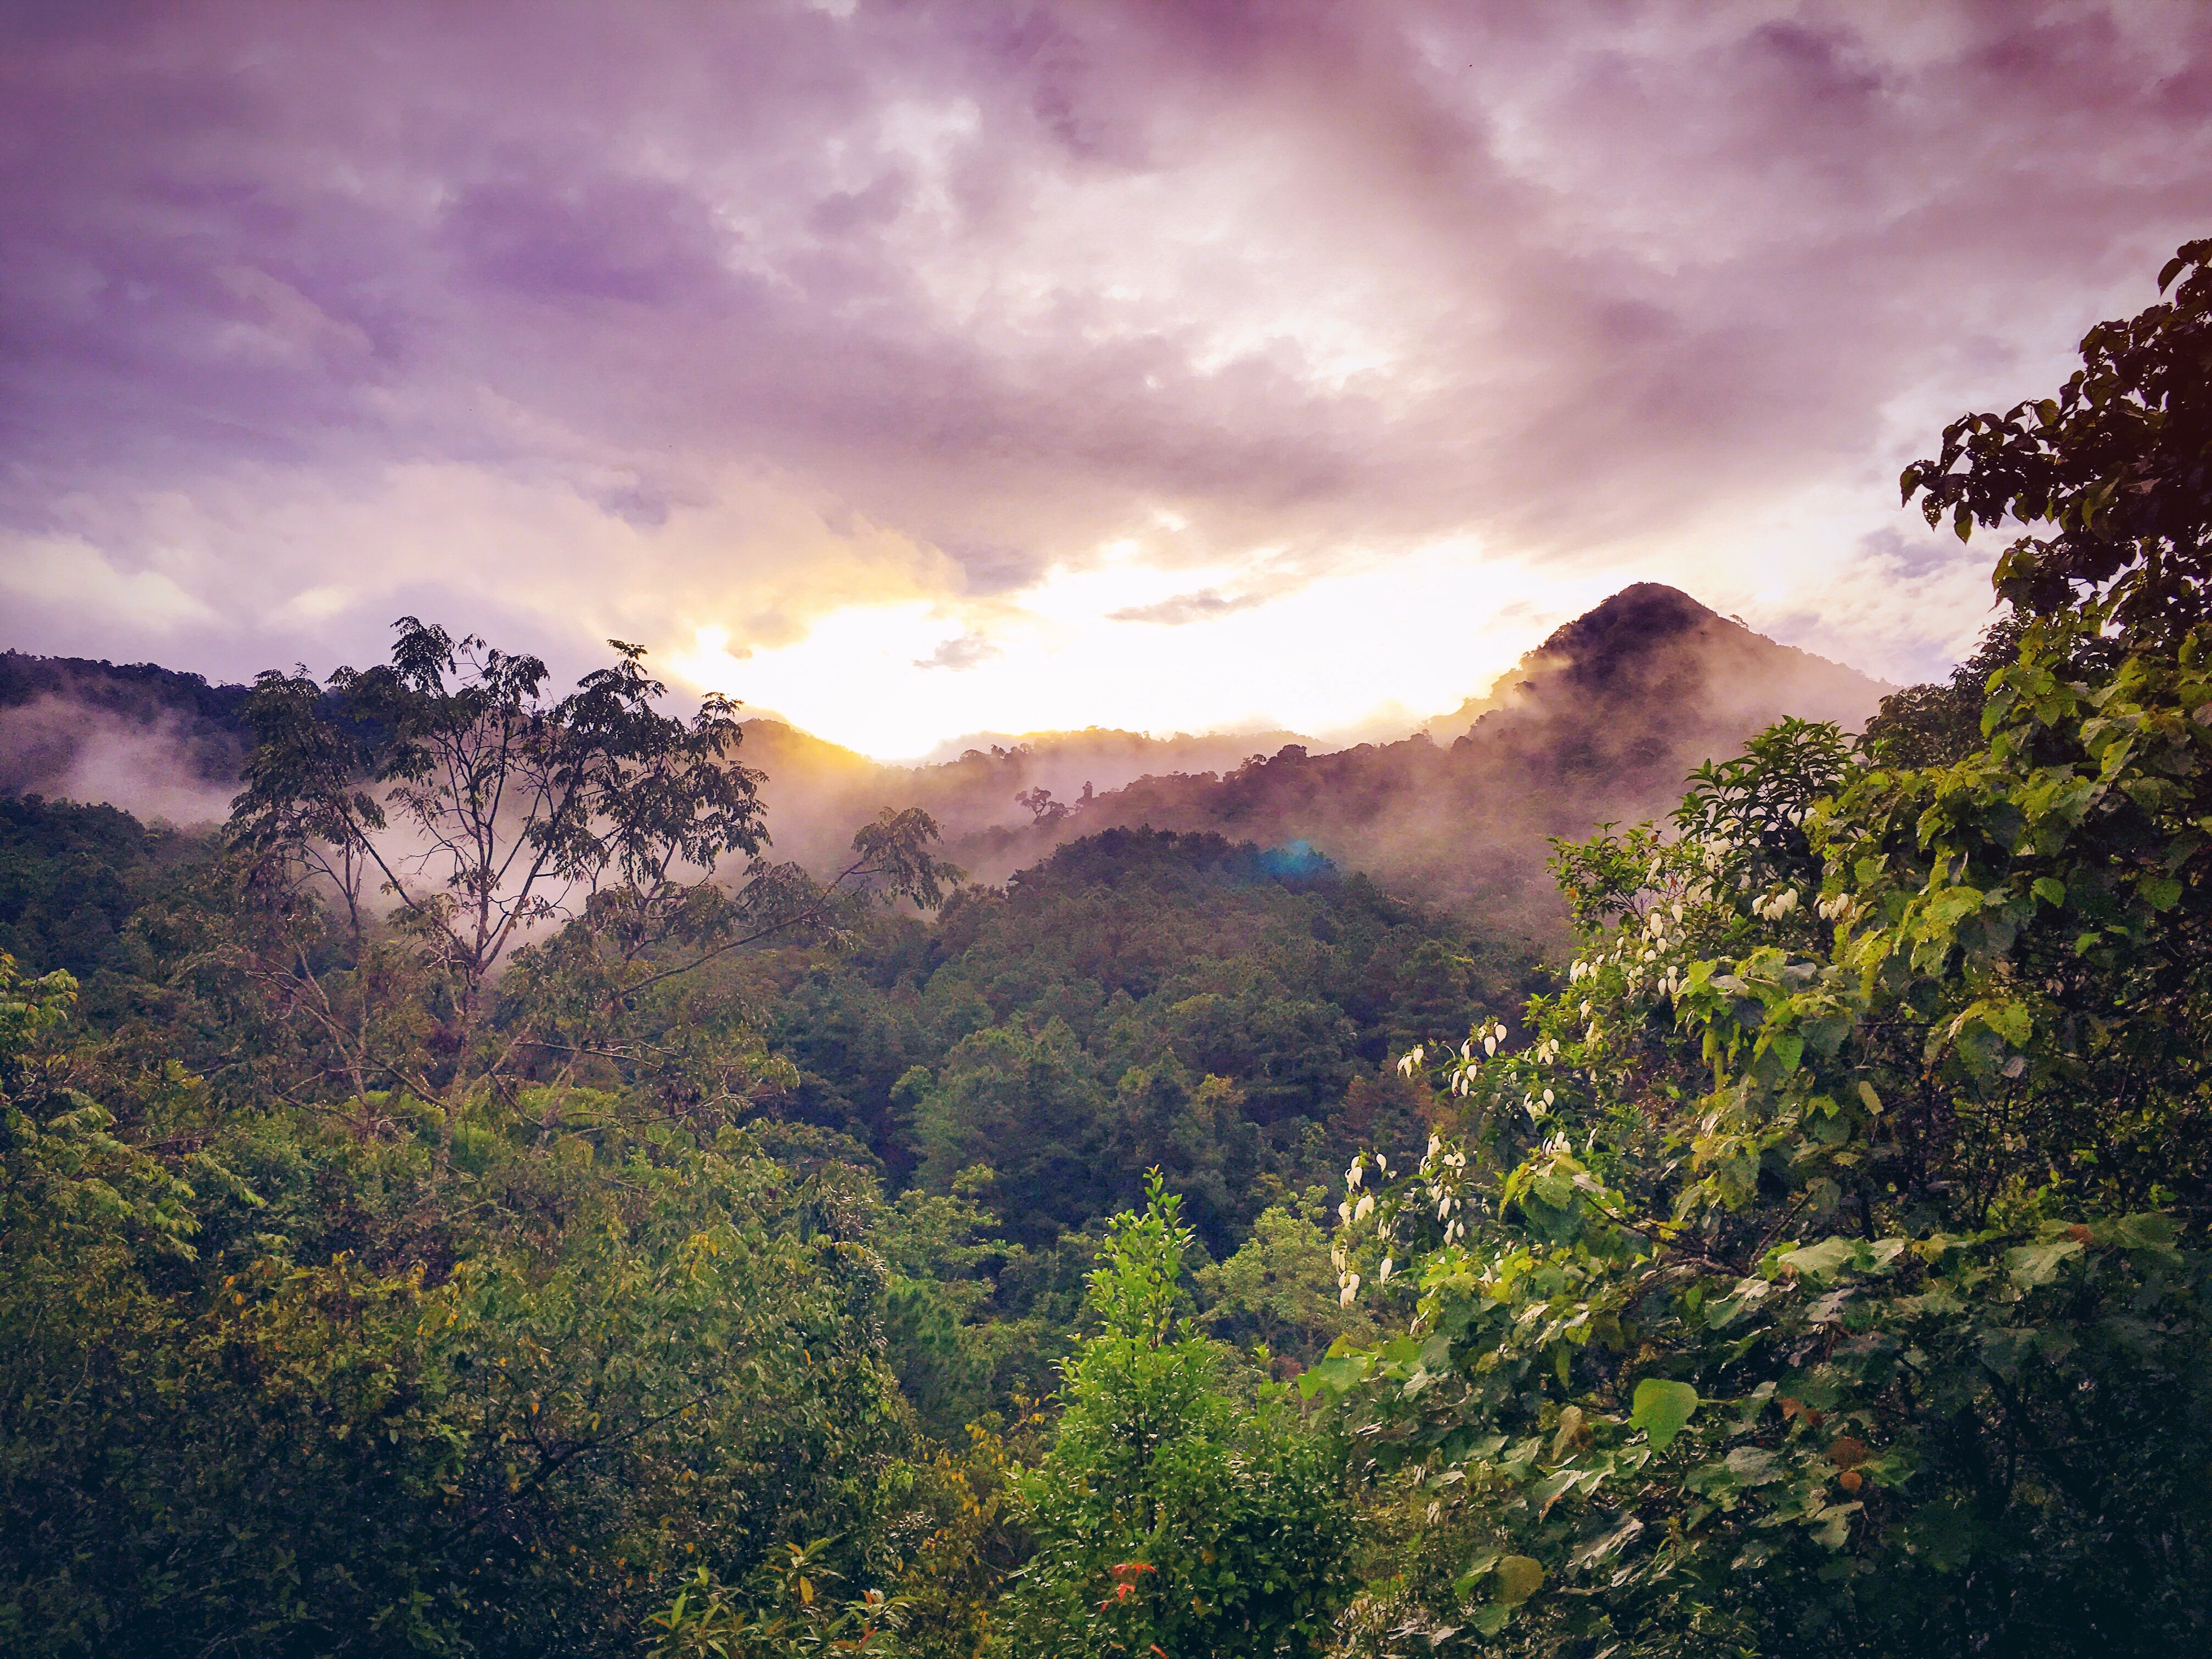 Brown Mountain Under Cloudy Sky During Sunset 183 Free Stock